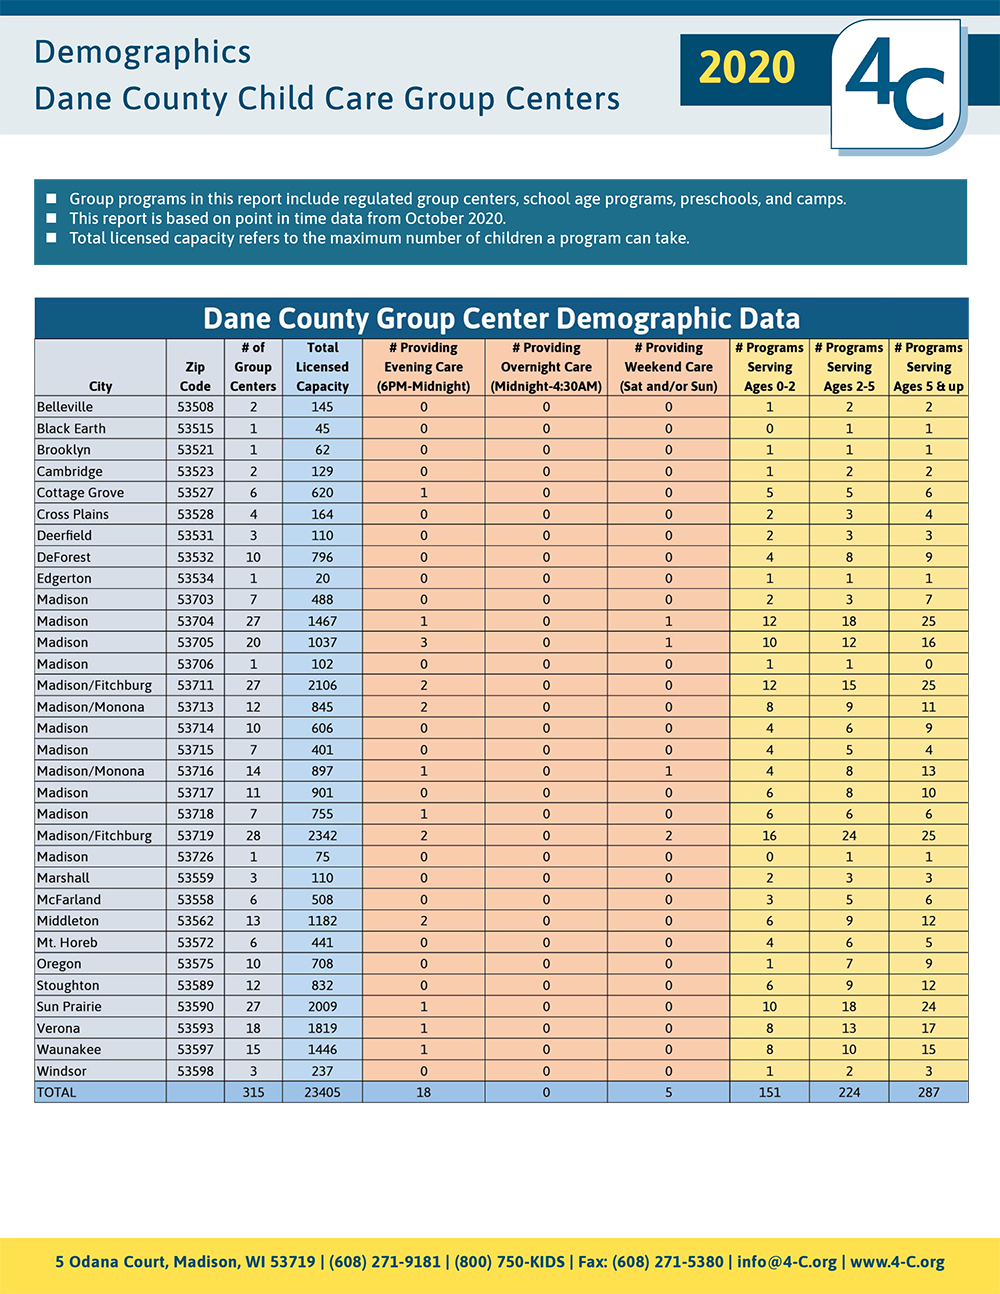 Demographics of Dane County CC Group Centers